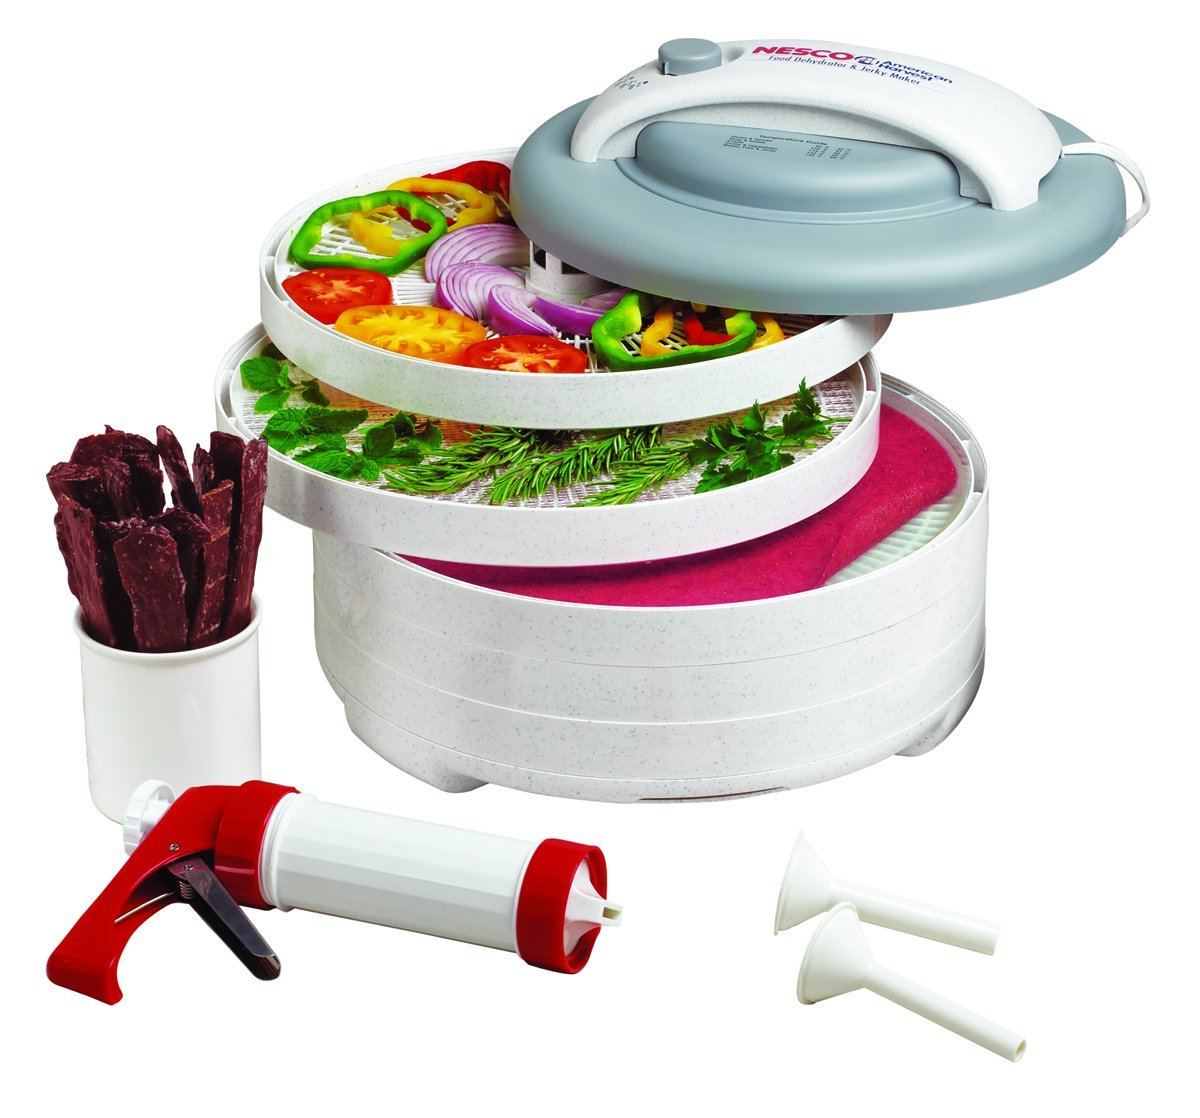 NESCO FD-61WHC, Snackmaster Express Food Dehydrator All-in-One Kit with Jerky Gun, White, 500 watts